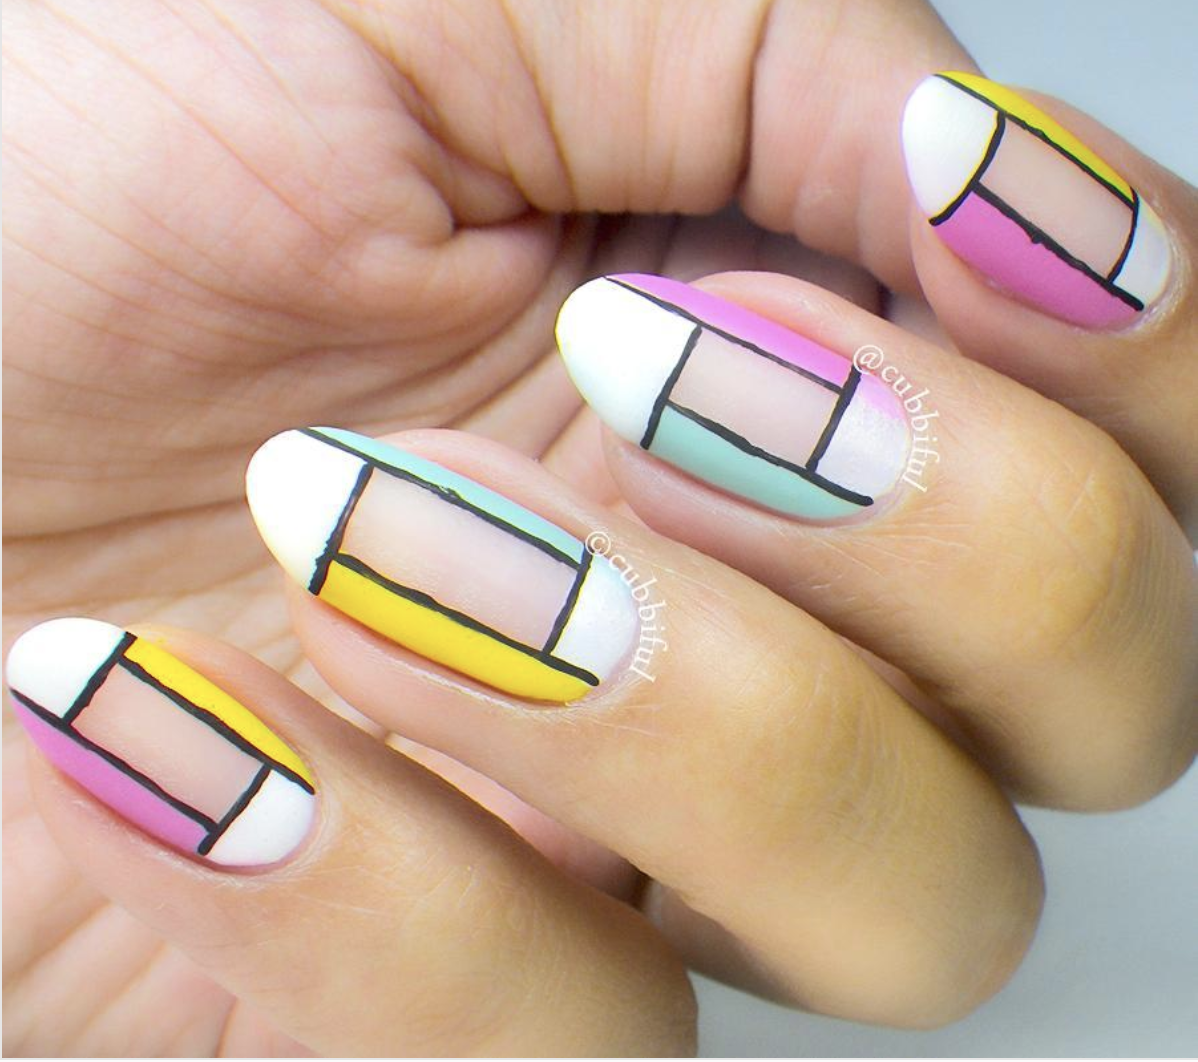 Color block nails from cubbiful, showcasing a current nail art trend.